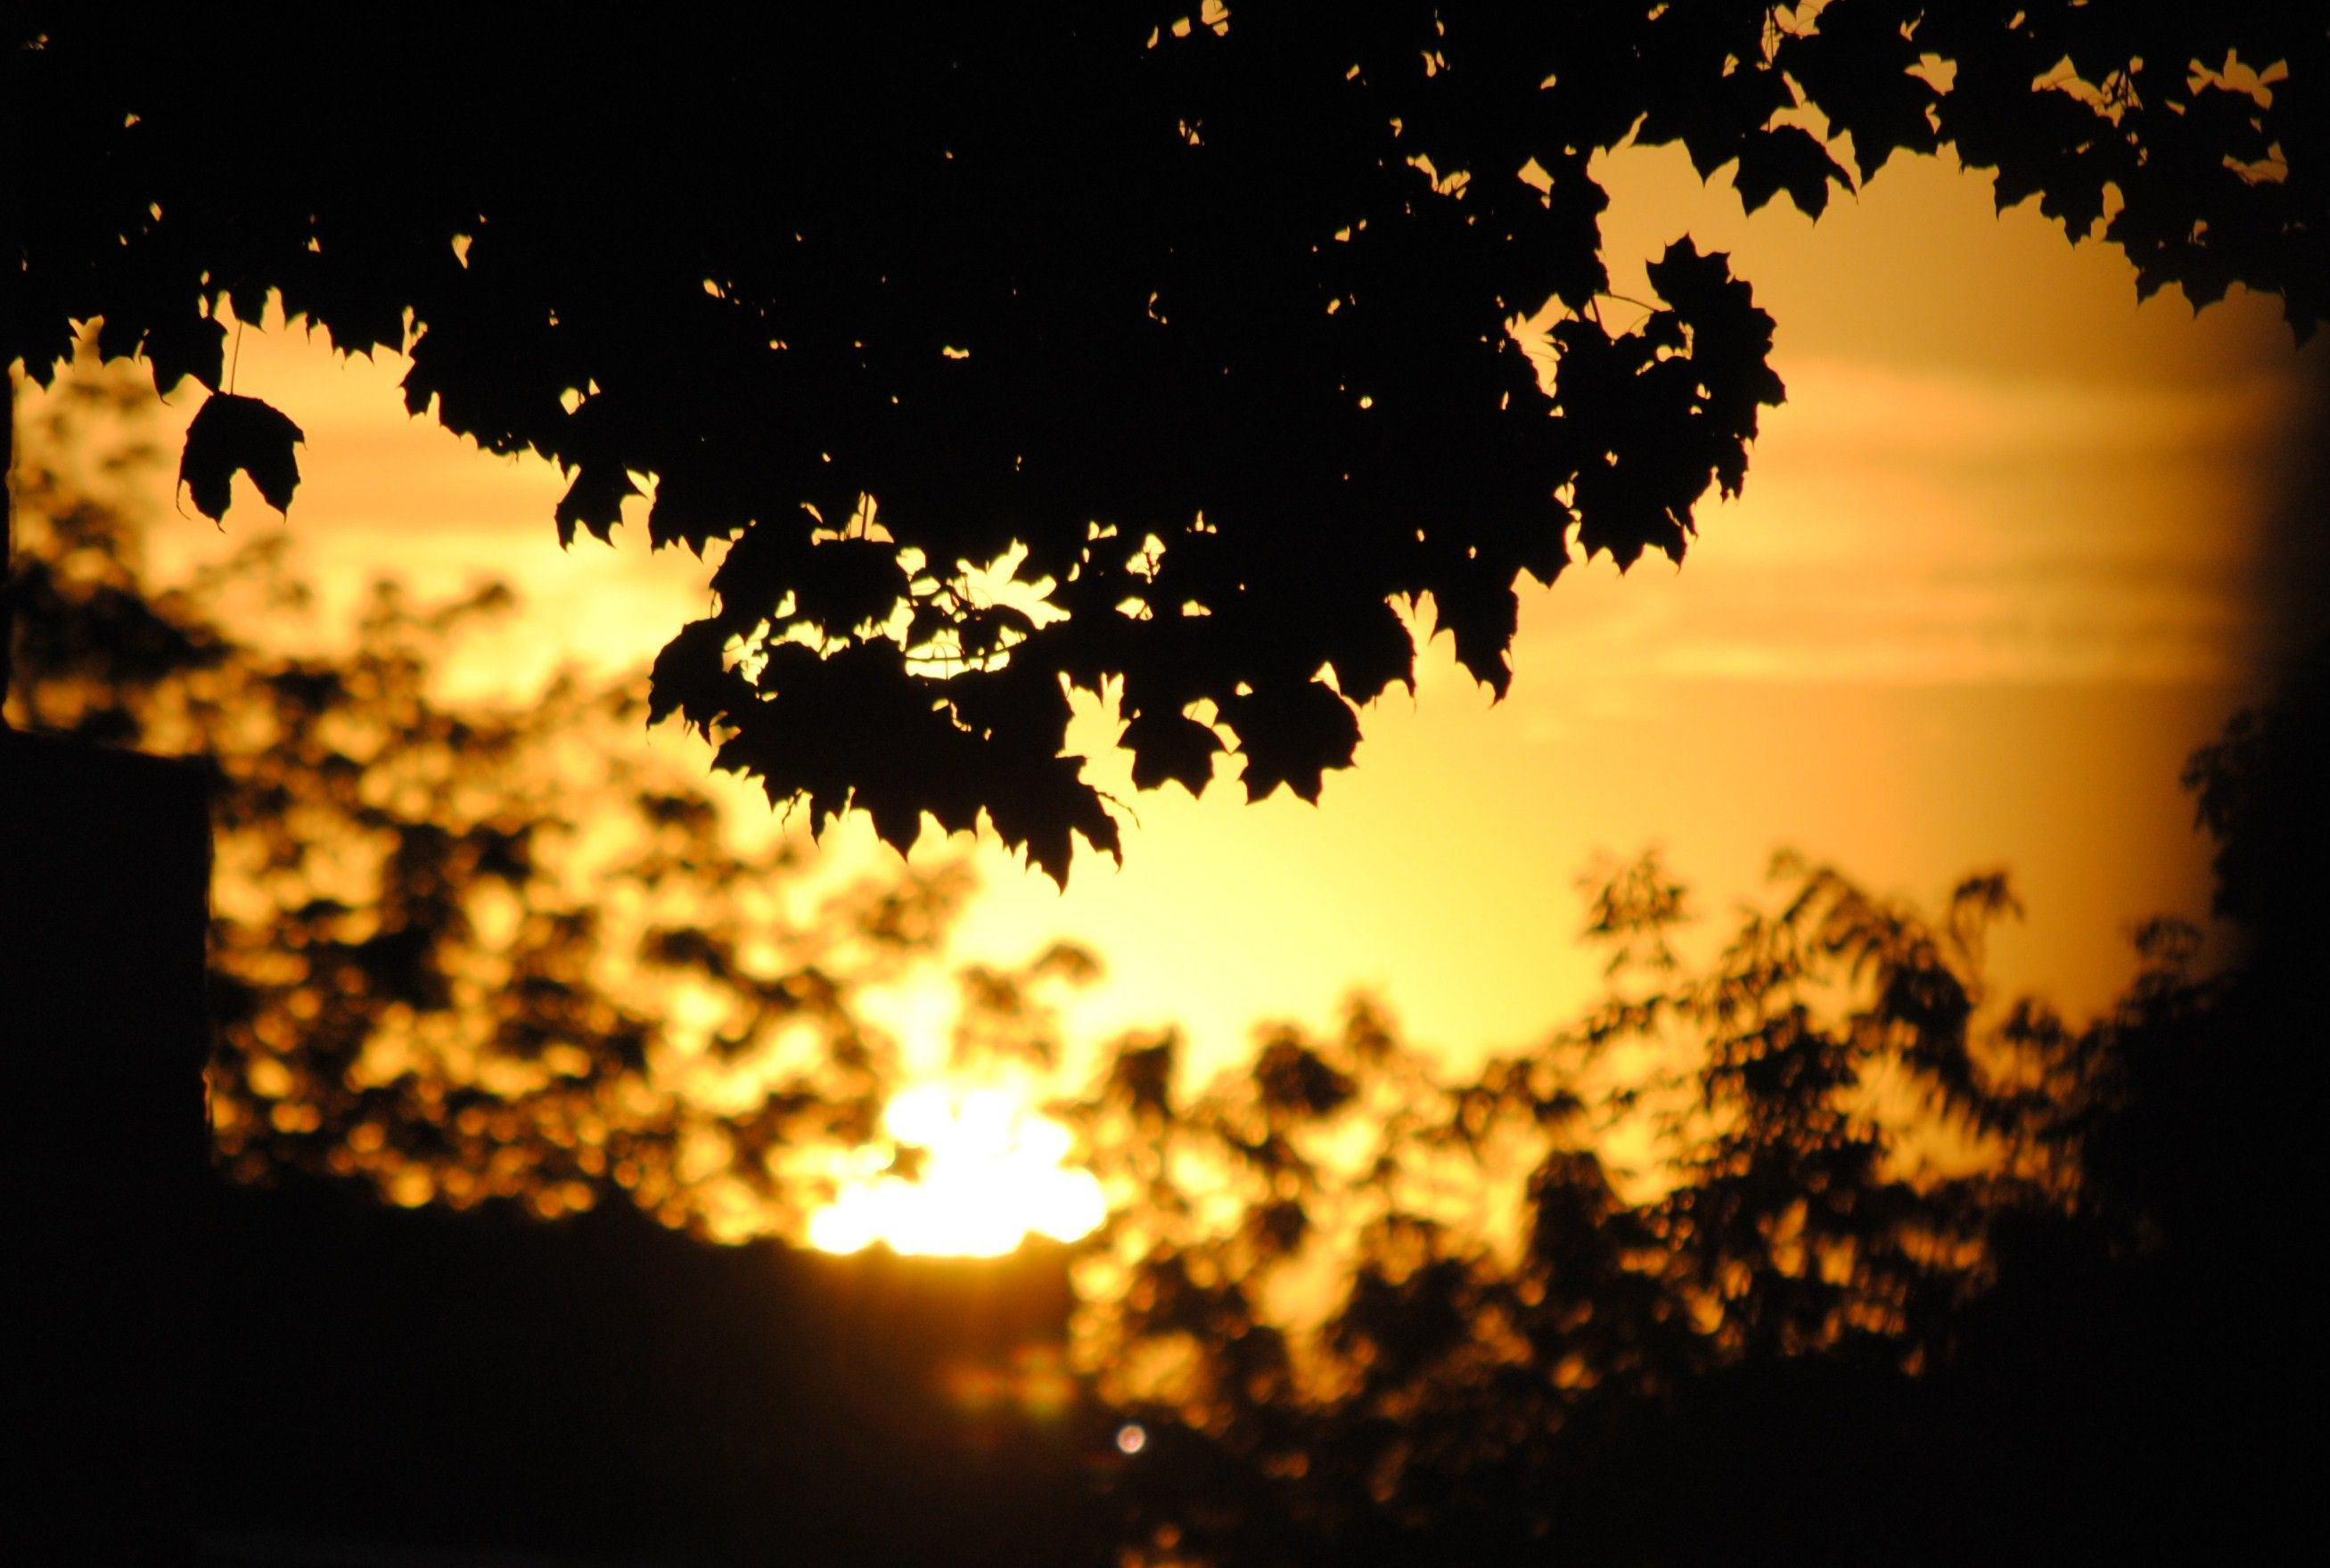 Silhouetted leaves during sunset.